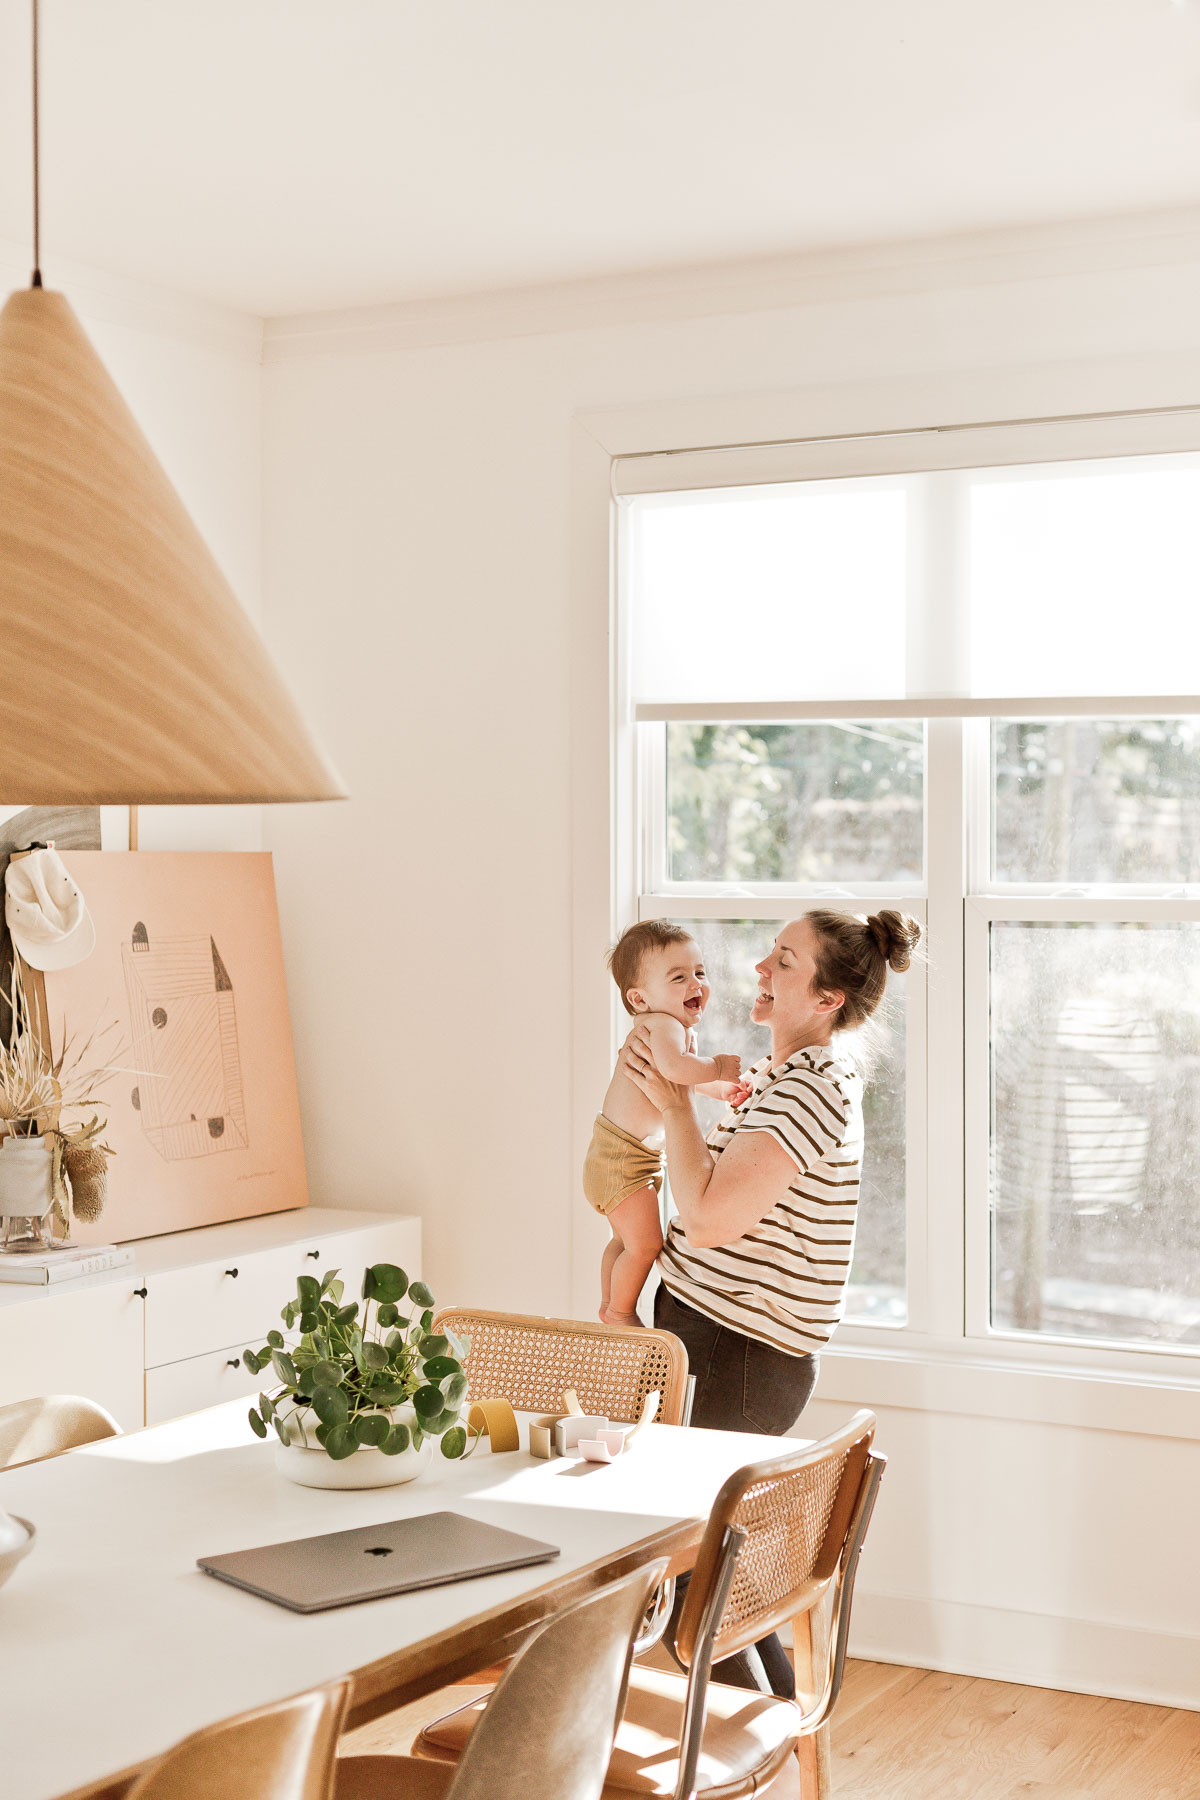 Hanging out with Brittni Mehlhoff of Paper and Stitch at home with her son. #modernhome #organicmodern #diningroom #californiastyle #midcenturystyle